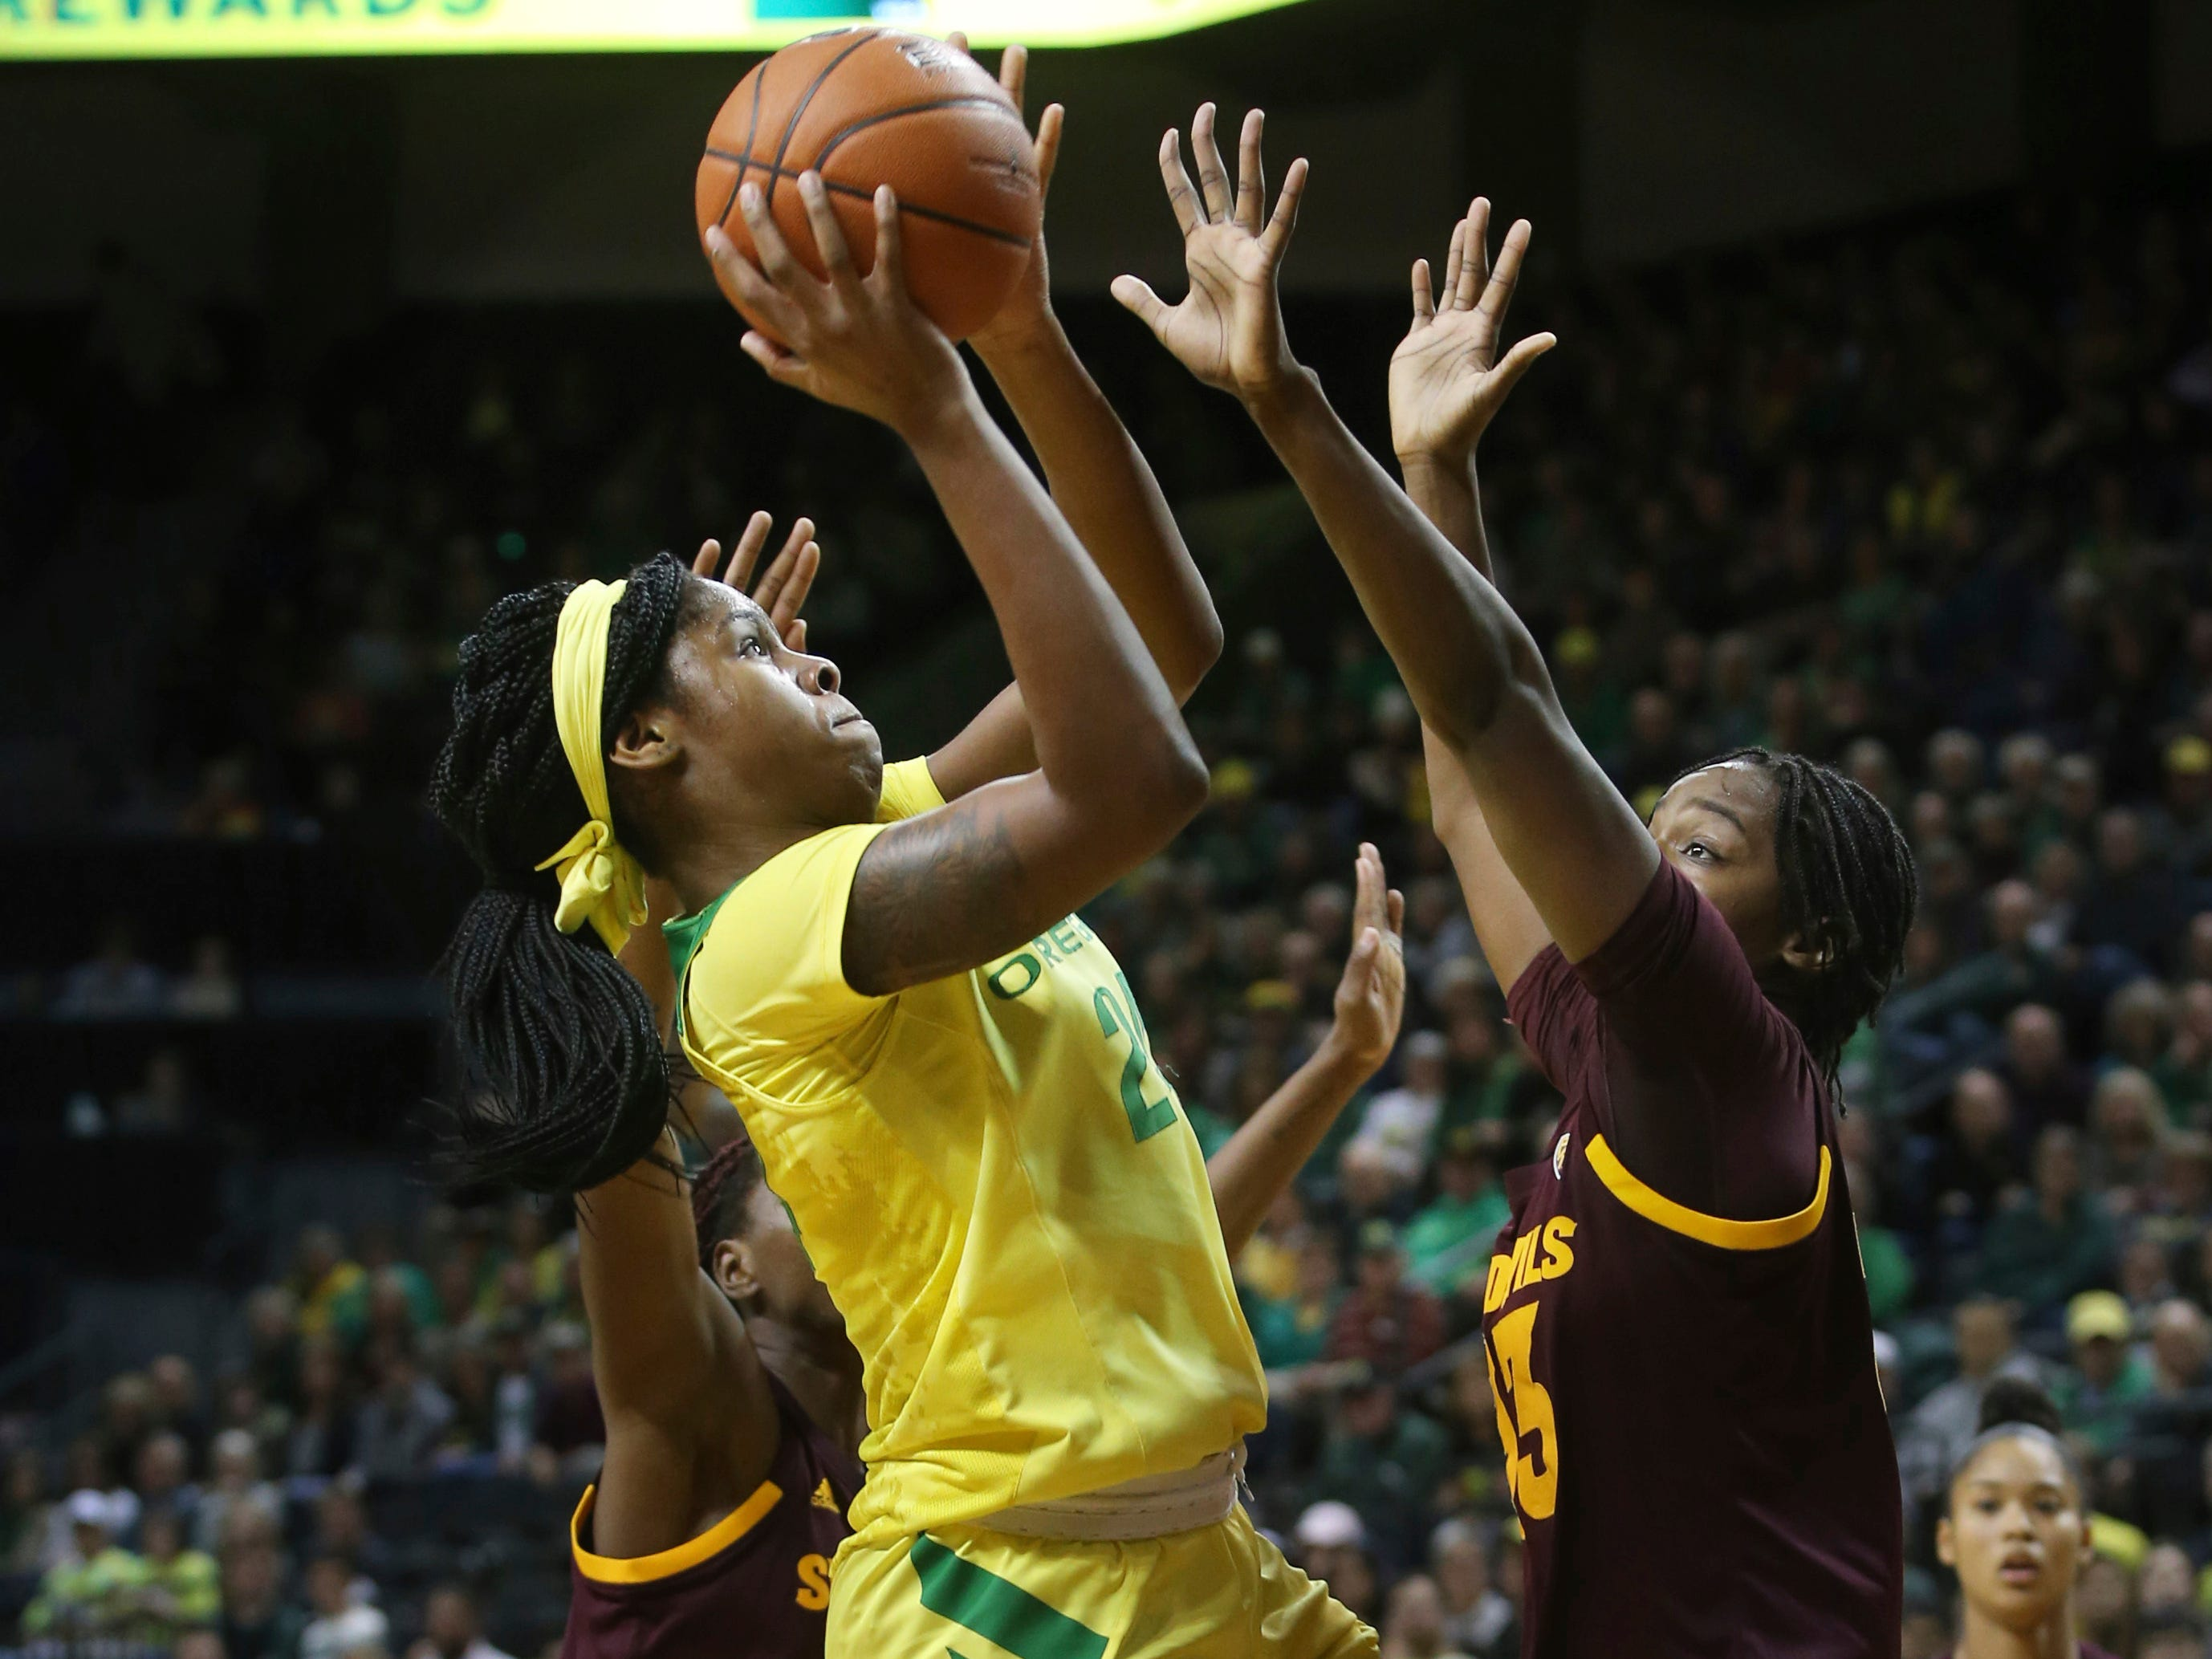 Oregon's Ruthy Hebard, center, shoots between Arizona State's Sophia Elenga, left, and Charnea Johnson-Chapman during the first quarter of an NCAA college basketball game Friday, Jan 18, 2019, in Eugene, Ore. (AP Photo/Chris Pietsch)